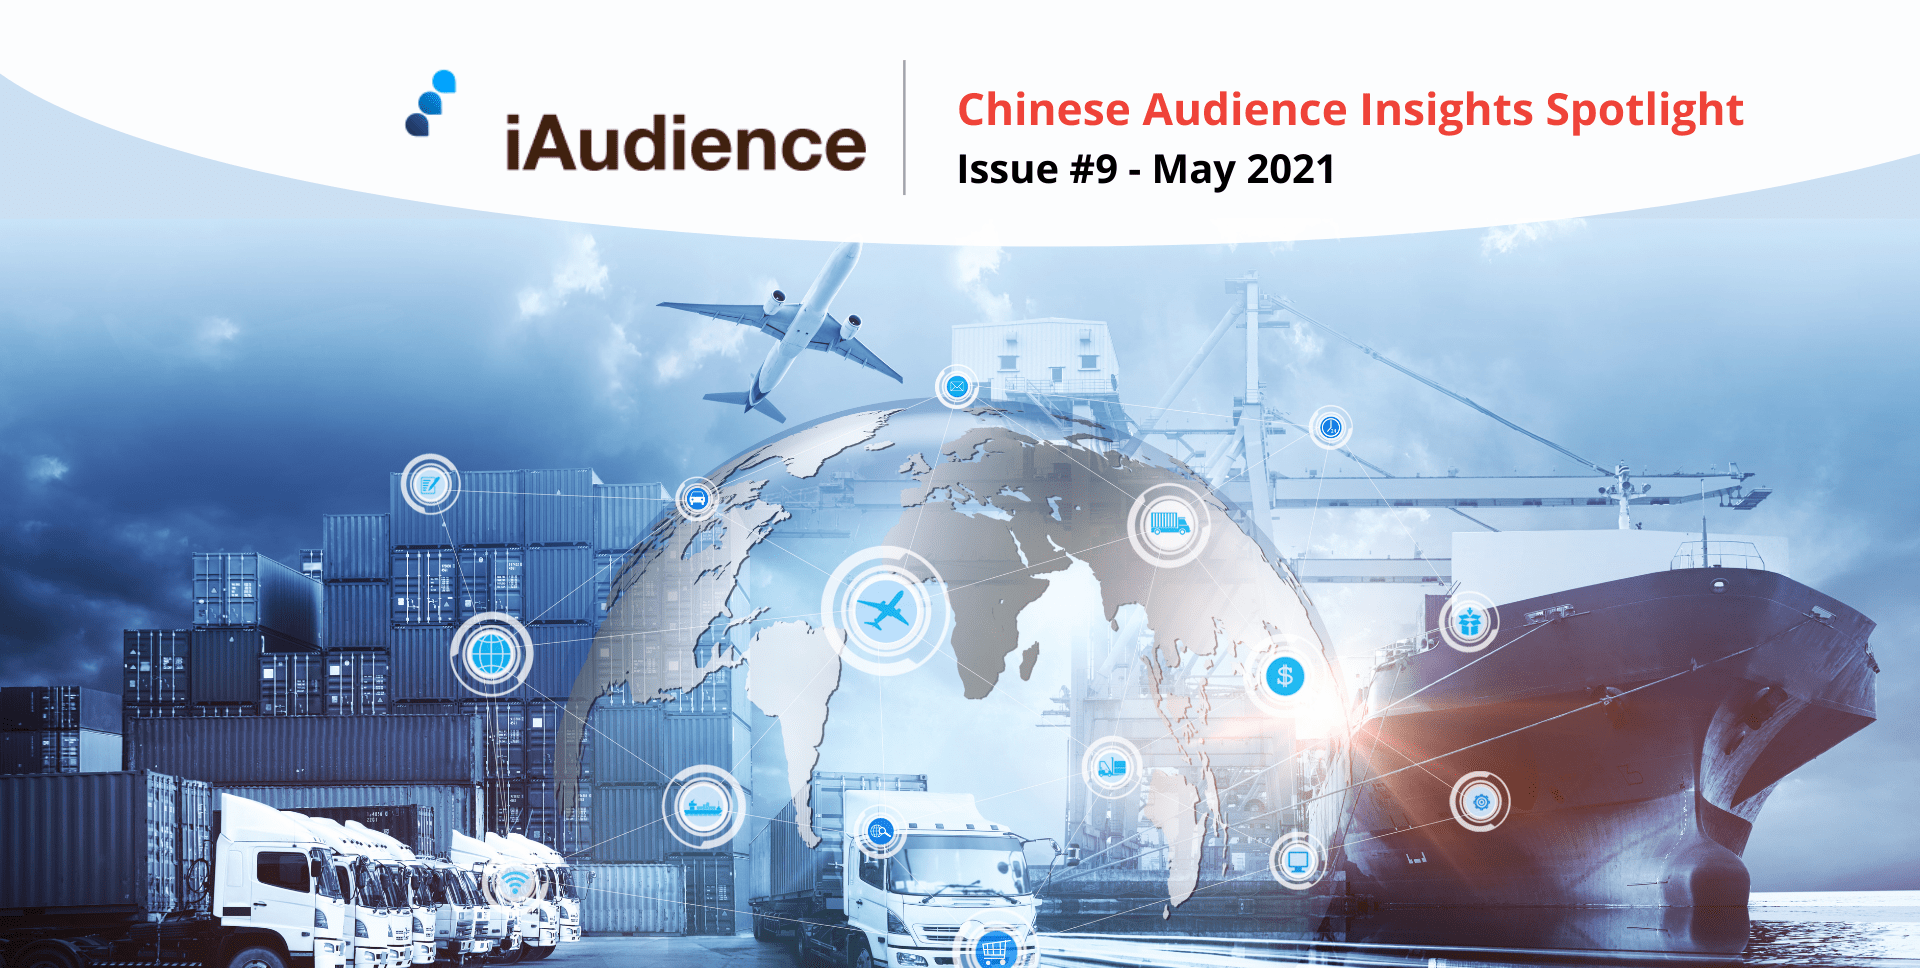 iAudience Insights Spotlight – Issue #9: Uncover the Latest Trend of Cross-Border E-Commerce among Chinese Audience